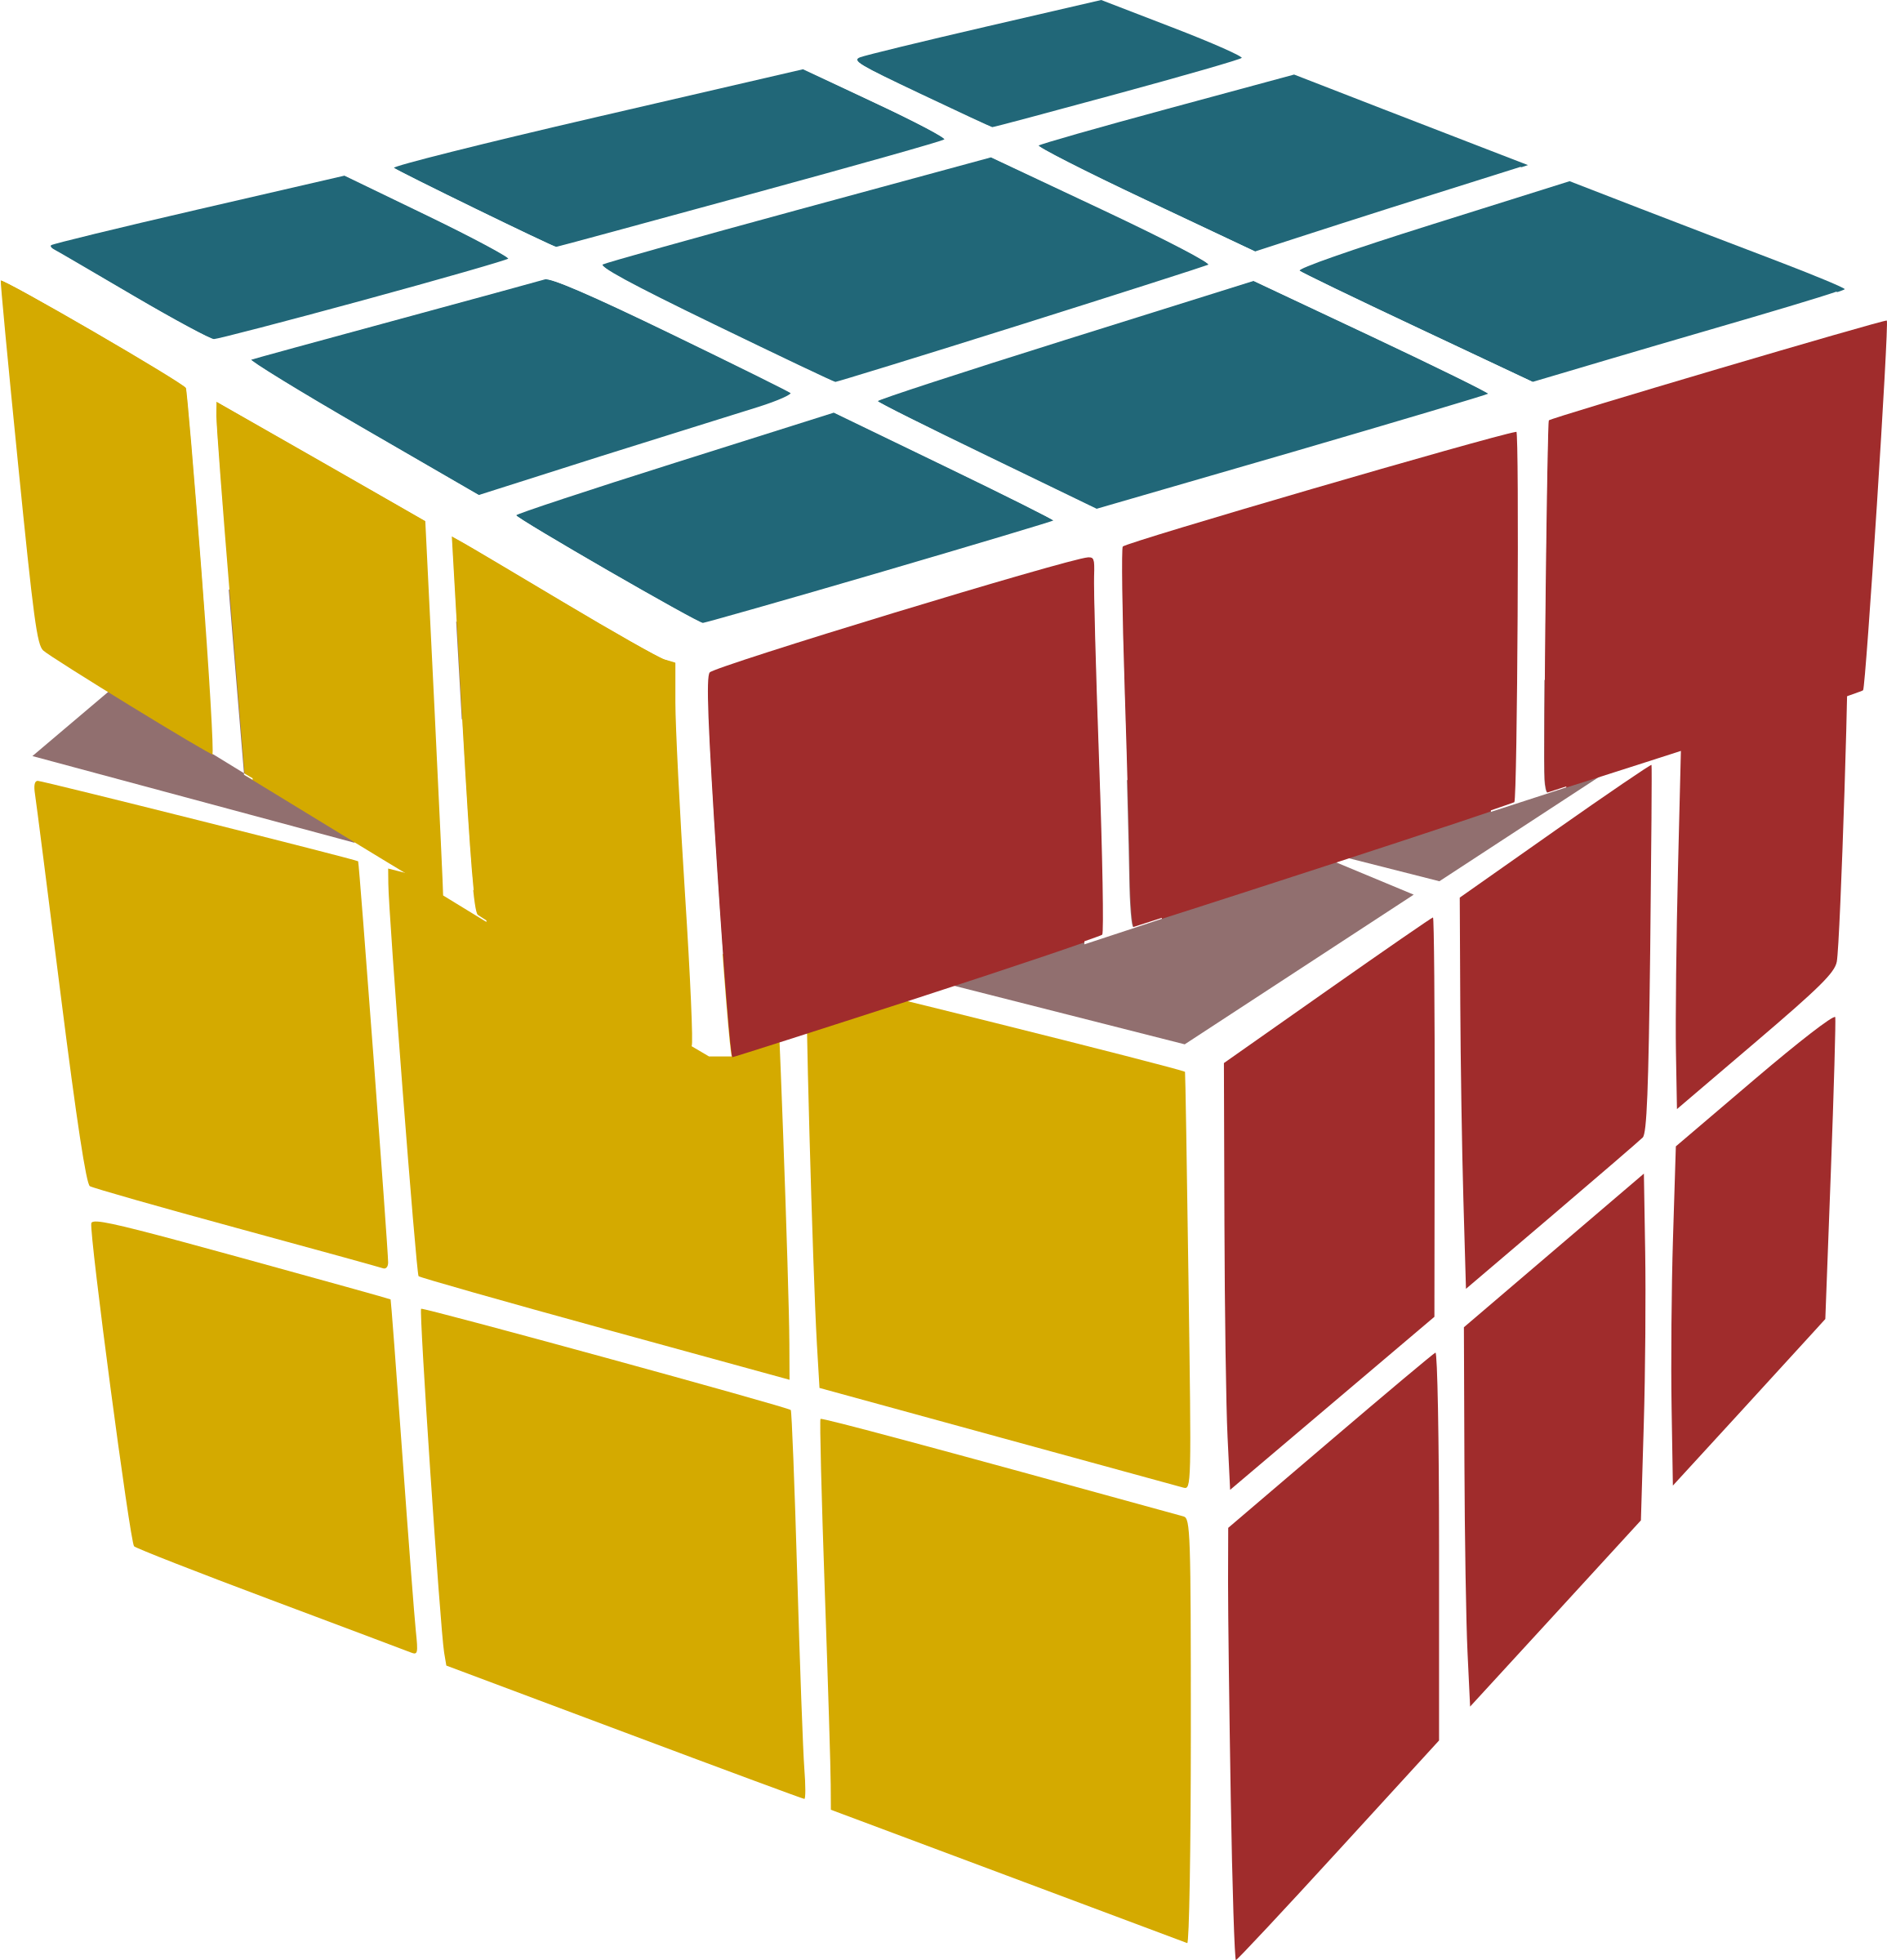 Rubik's Scrambled by leogg